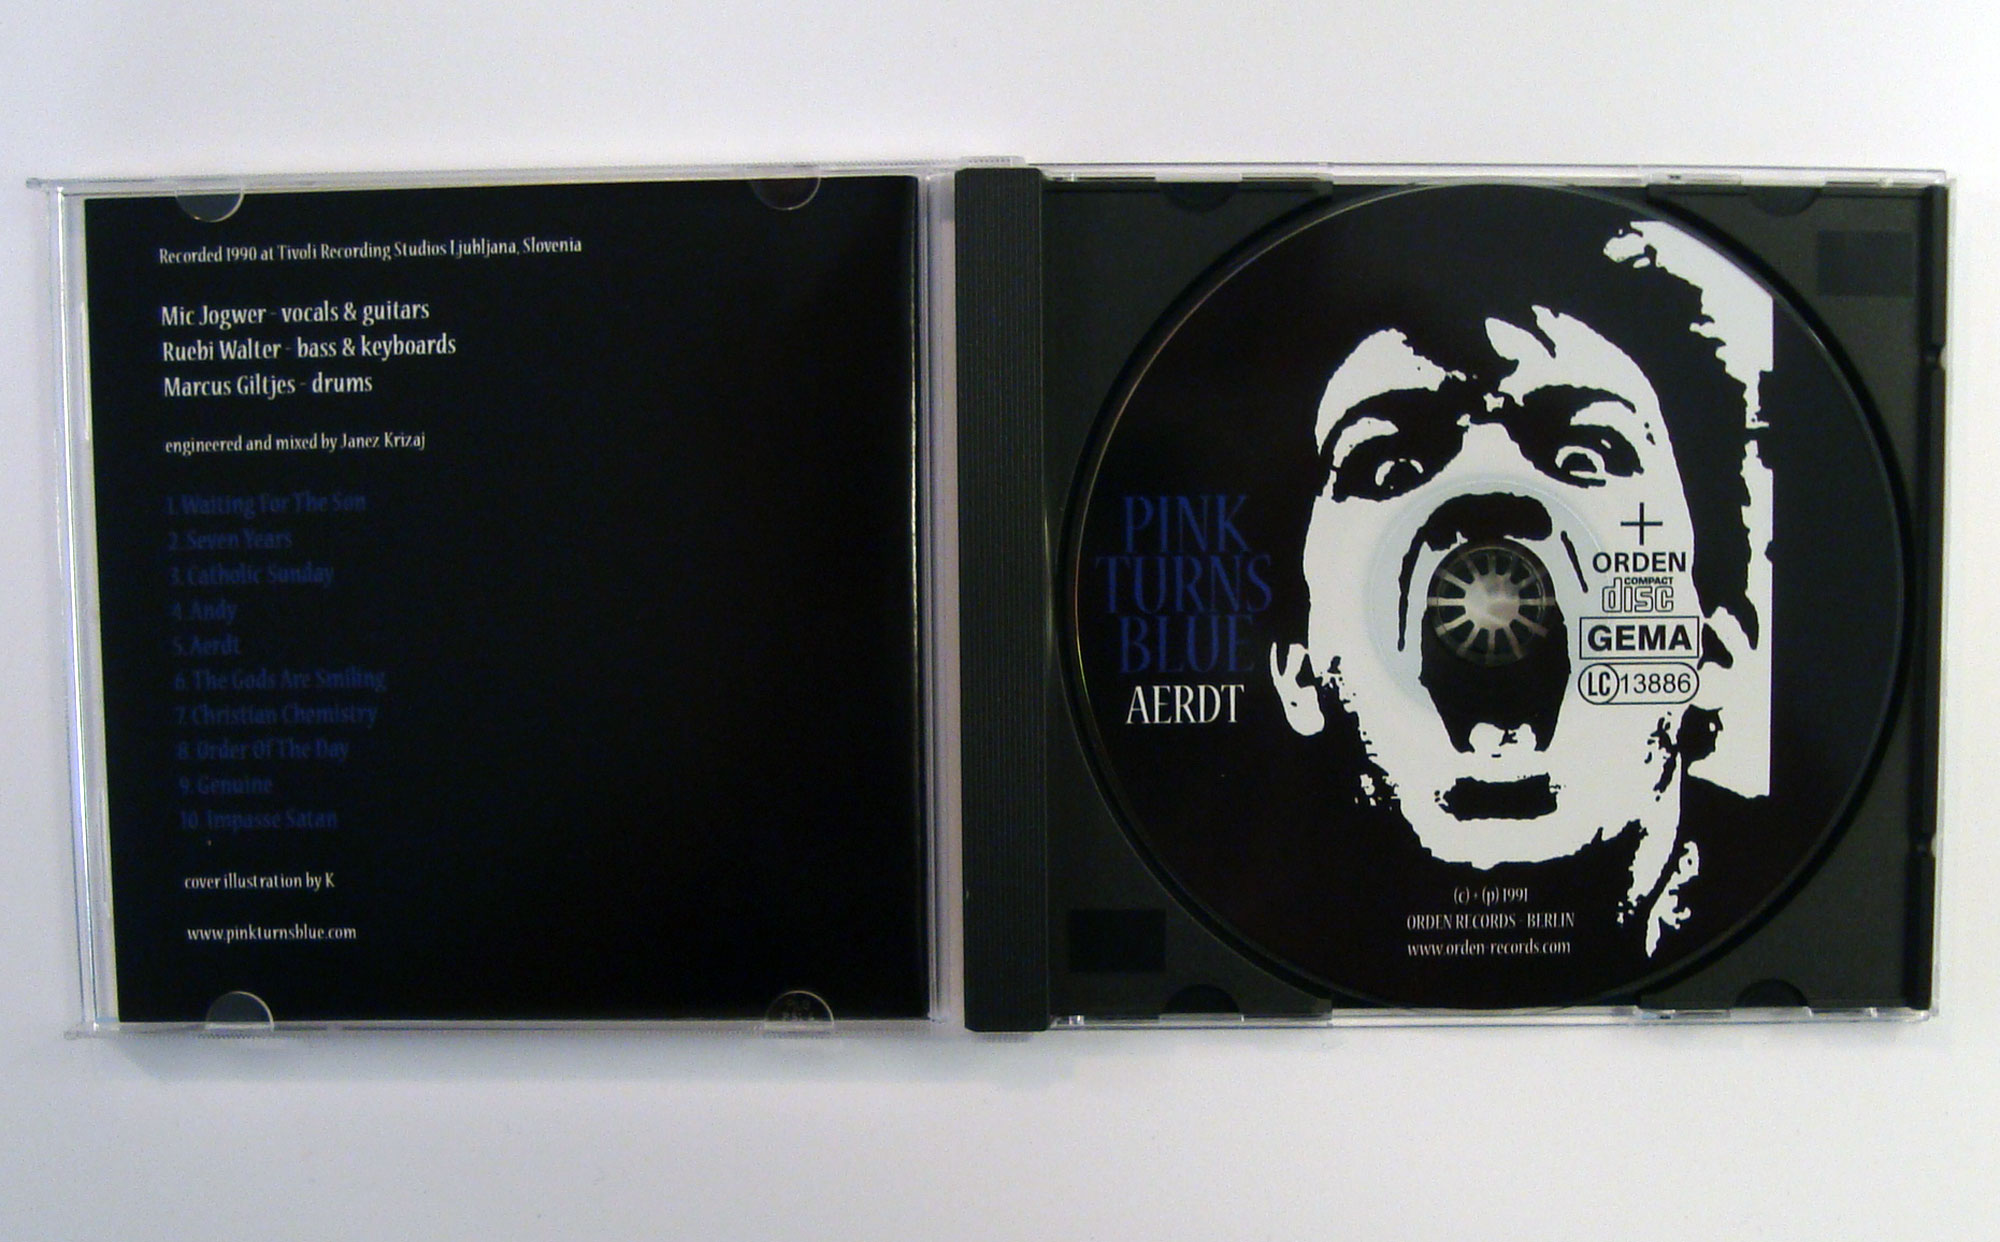 PINK TURNS BLUE - AERDT - CD album - opened